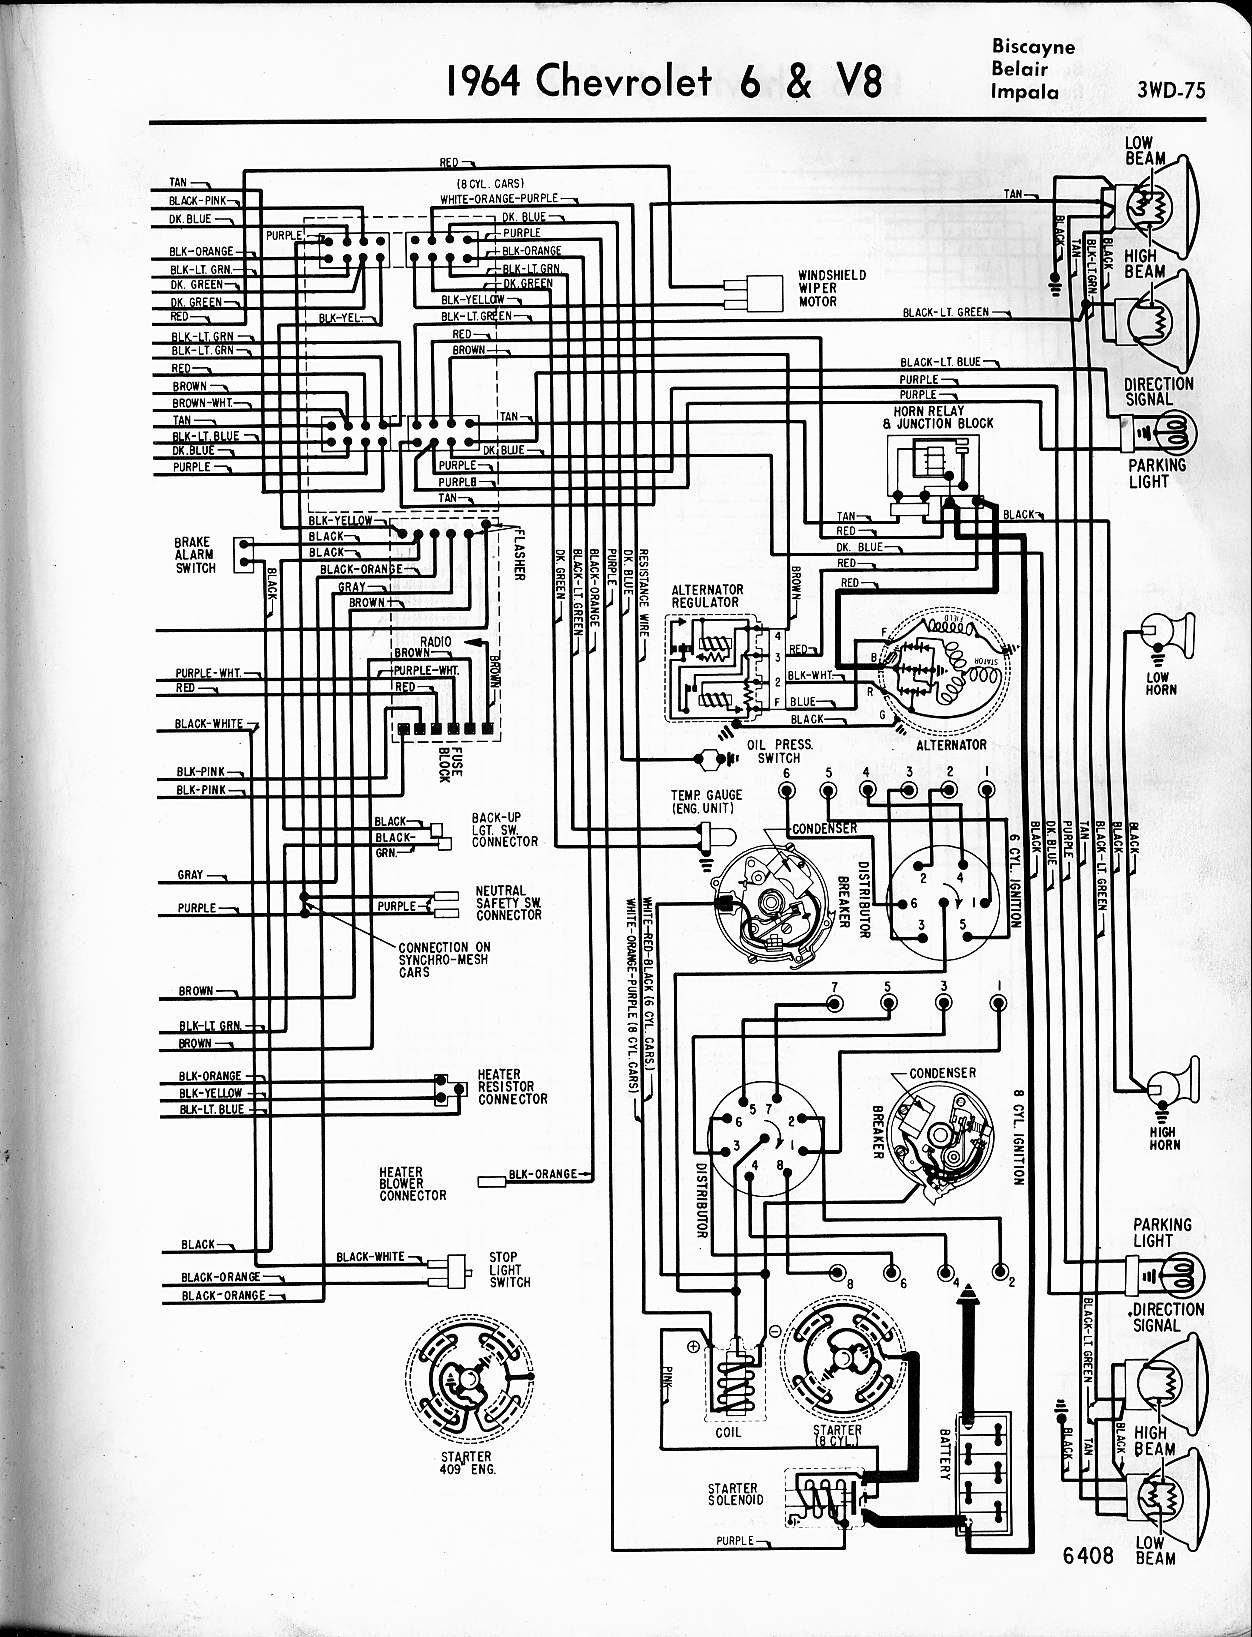 hight resolution of 64 impala wiring diagram simple wiring schema monte carlo diagram impala fuse diagram source 1966 impala chevrolet passenger car